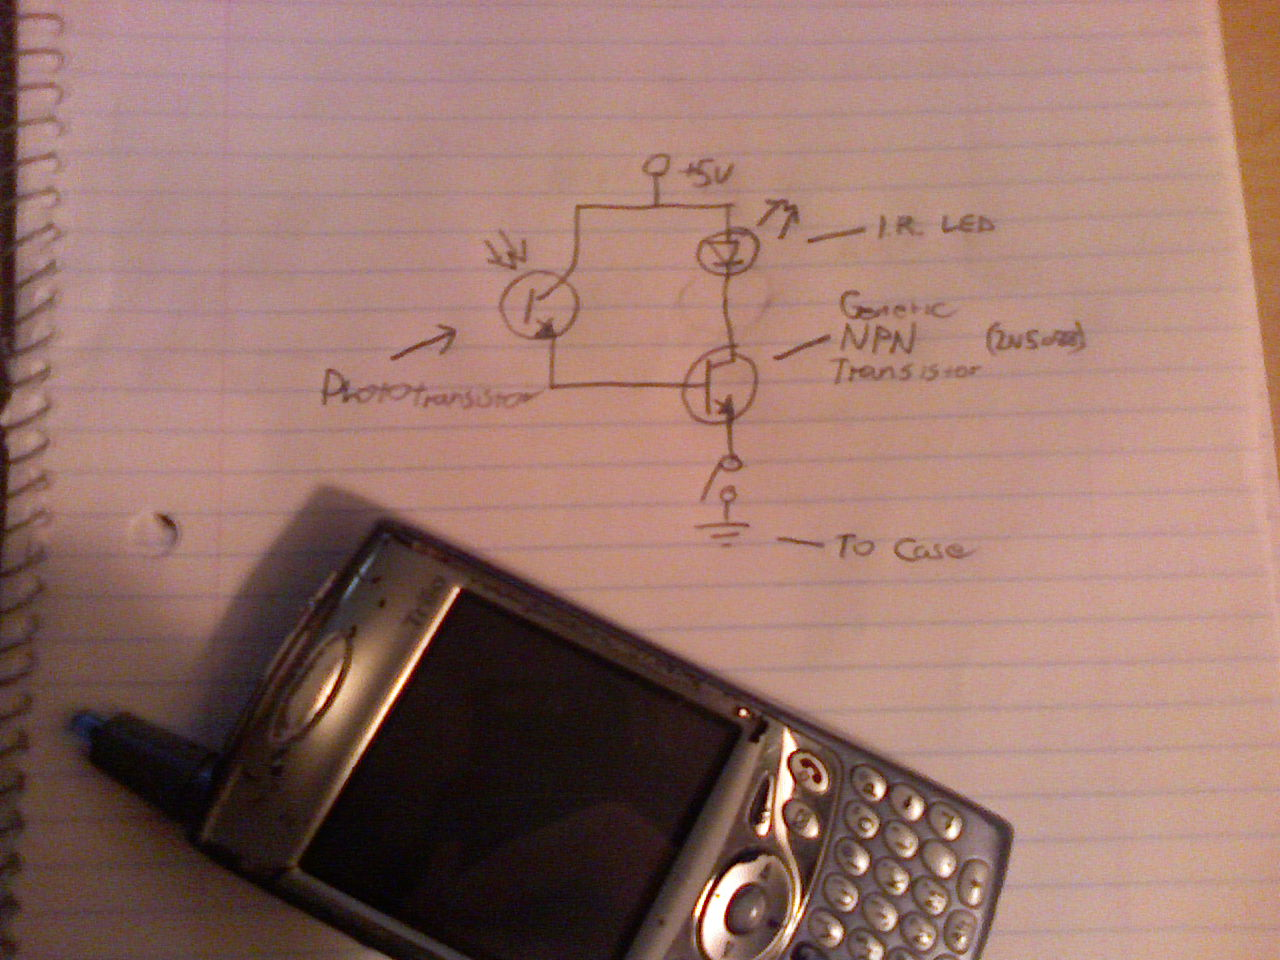 Circuit Diagram For Gps Speedometer Using Pic 16f877a Microcontroller